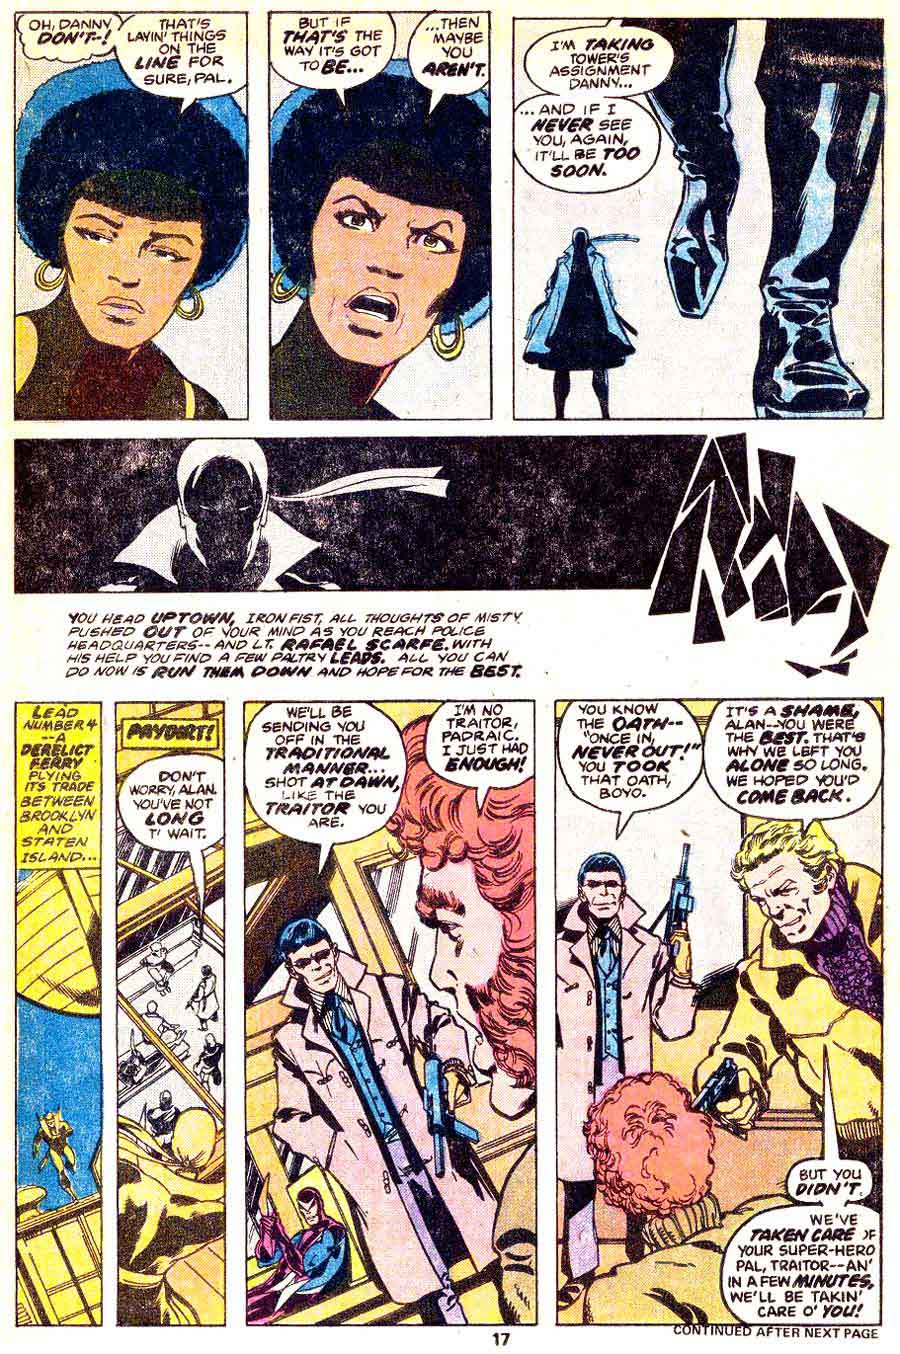 Iron Fist #13 bronze age 1970s marvel comic book page art by John Byrne